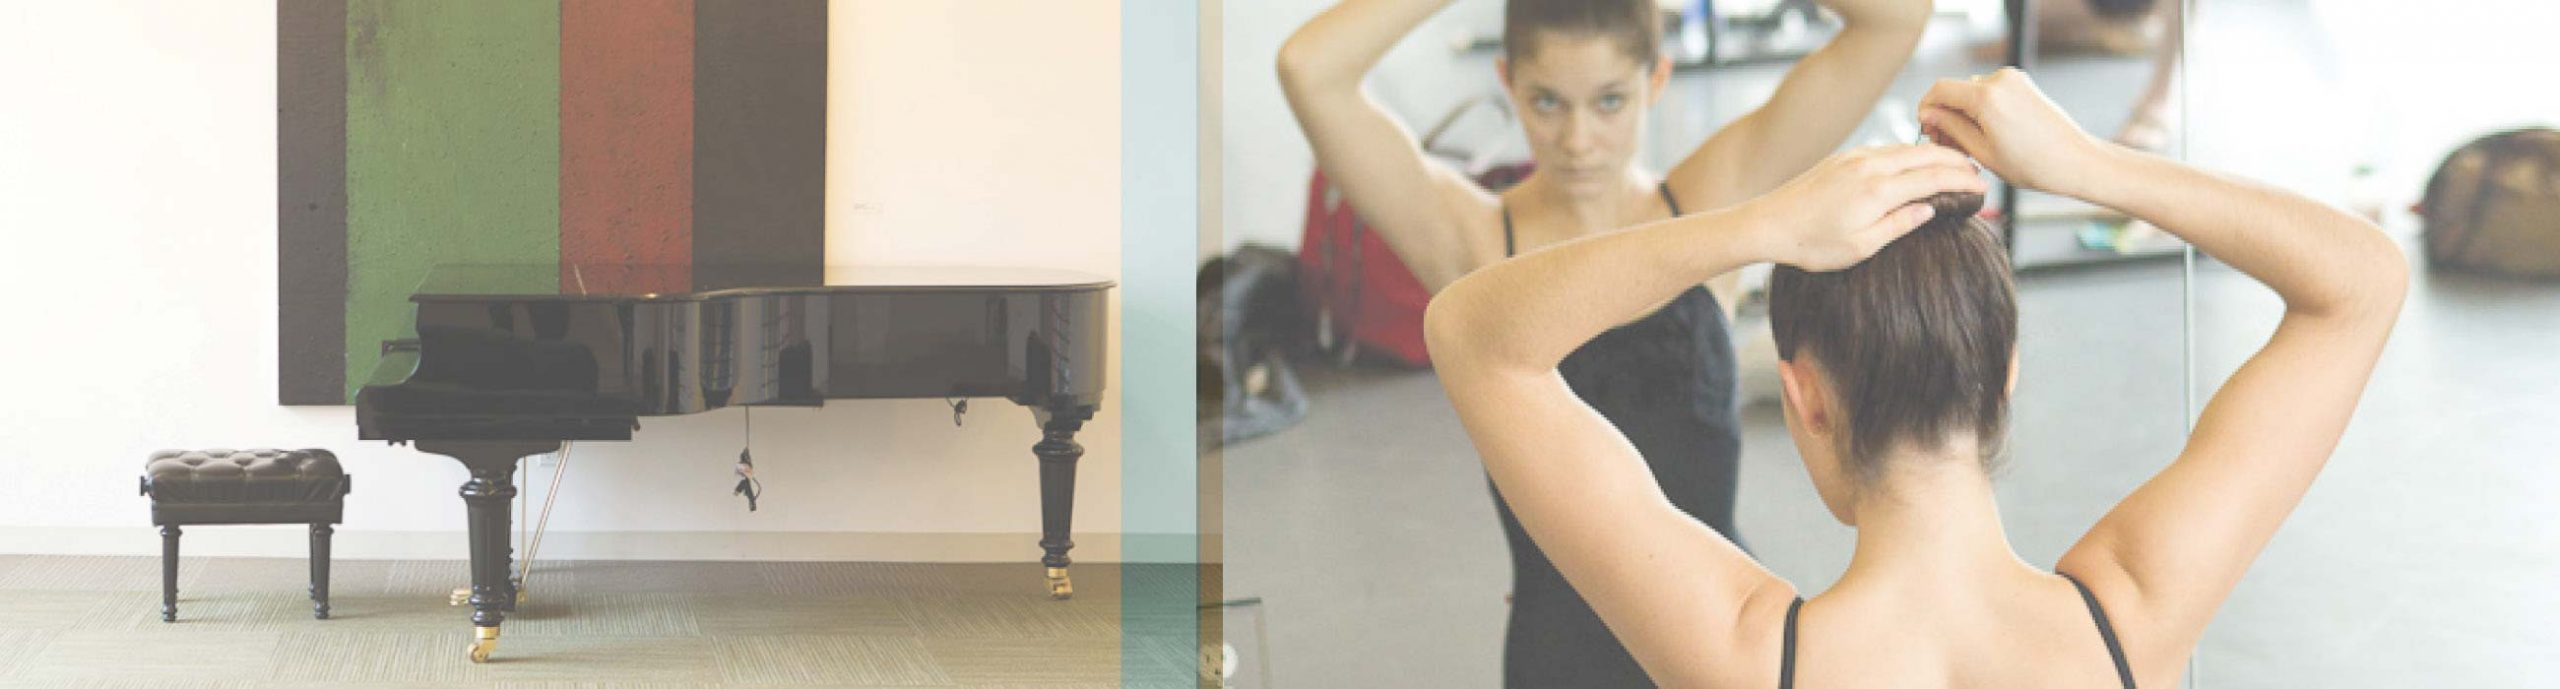 Photo on left of piano against wall, photo on right of ballet dancer putting long brown hair in a bun looking in the studio mirror